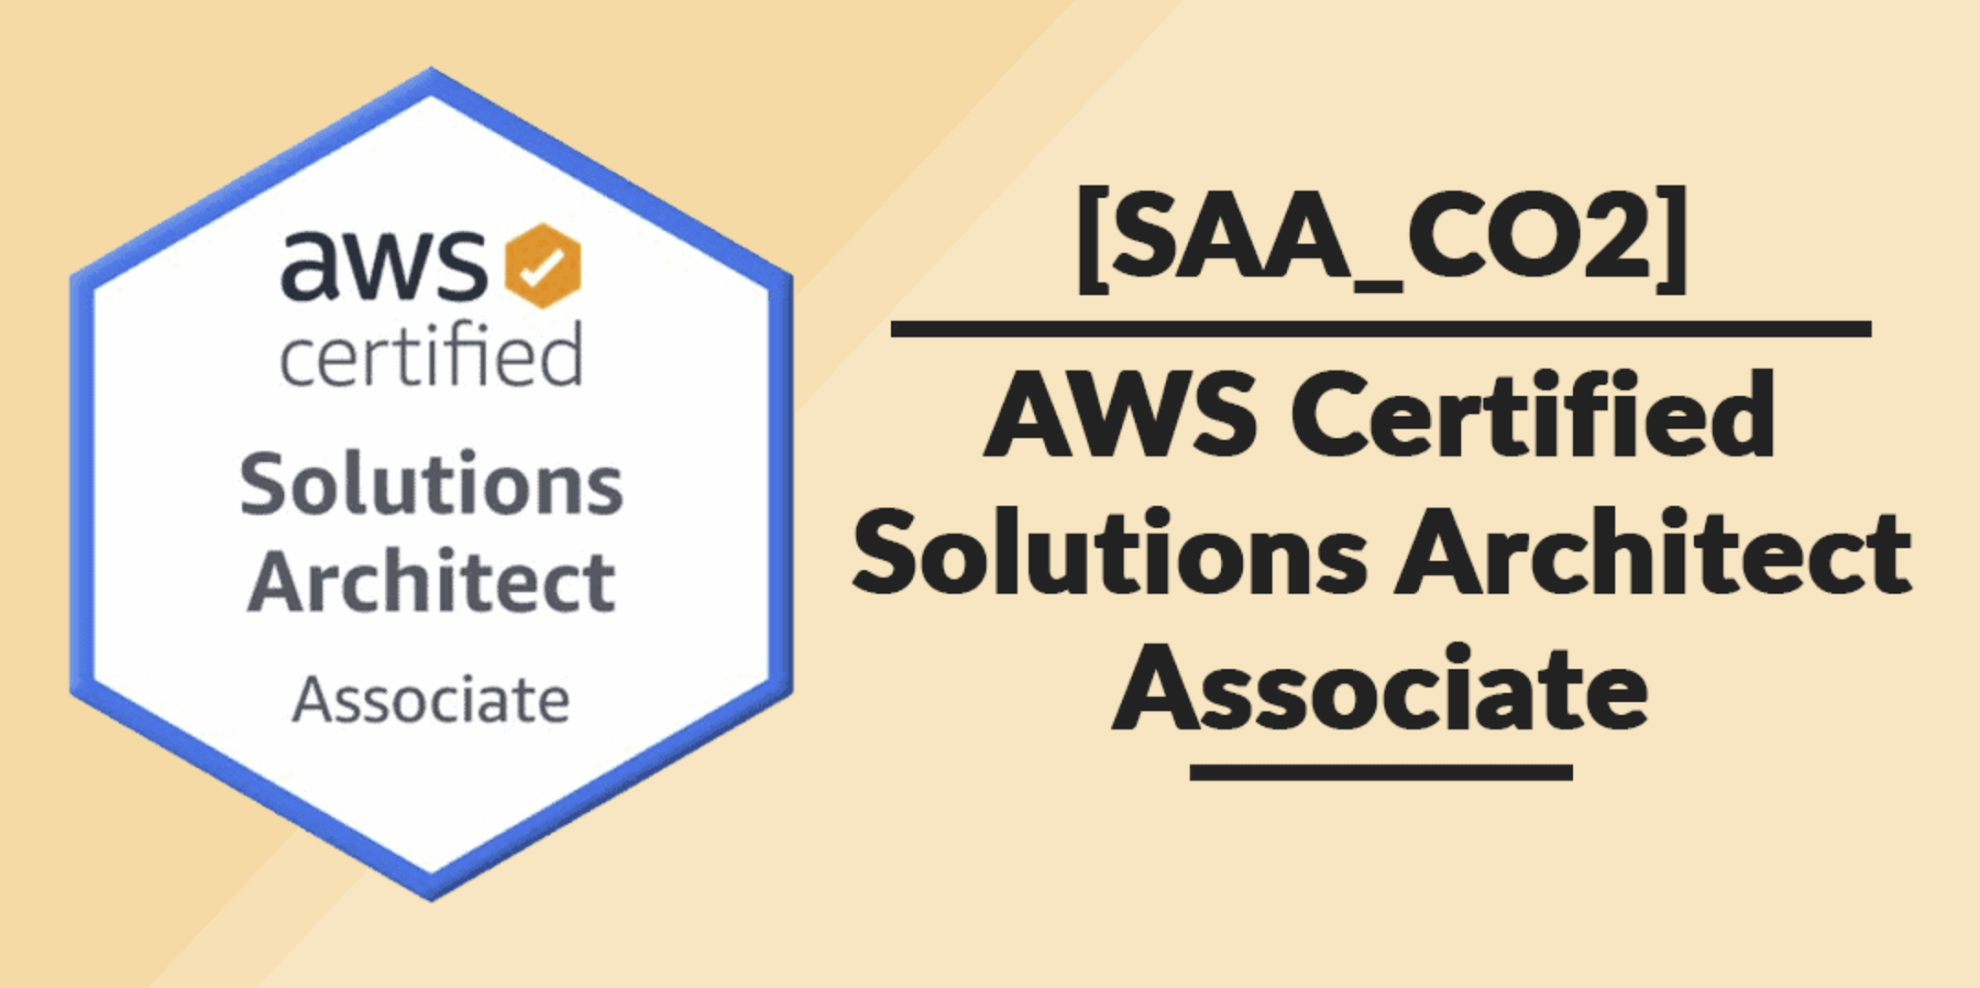 AWS Certified Solutions Architect - Associate SAA-C02 Exam Questions and Answers